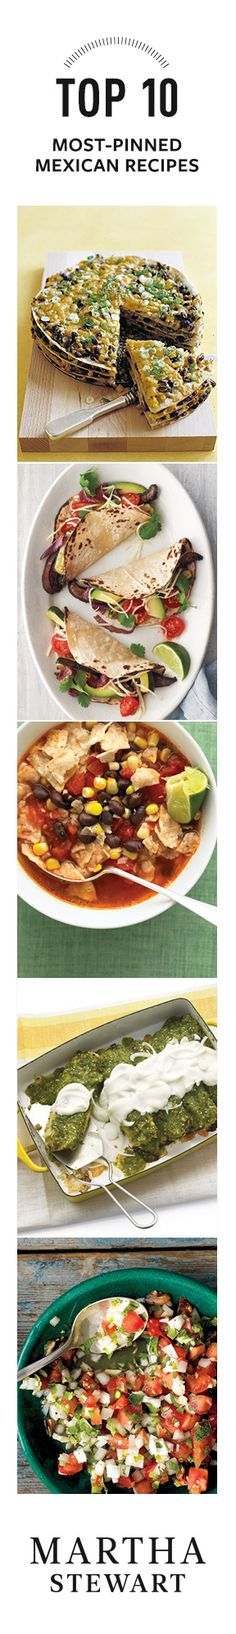 Top 10 Most-Pinned Mexican Recipes from Martha Stewart